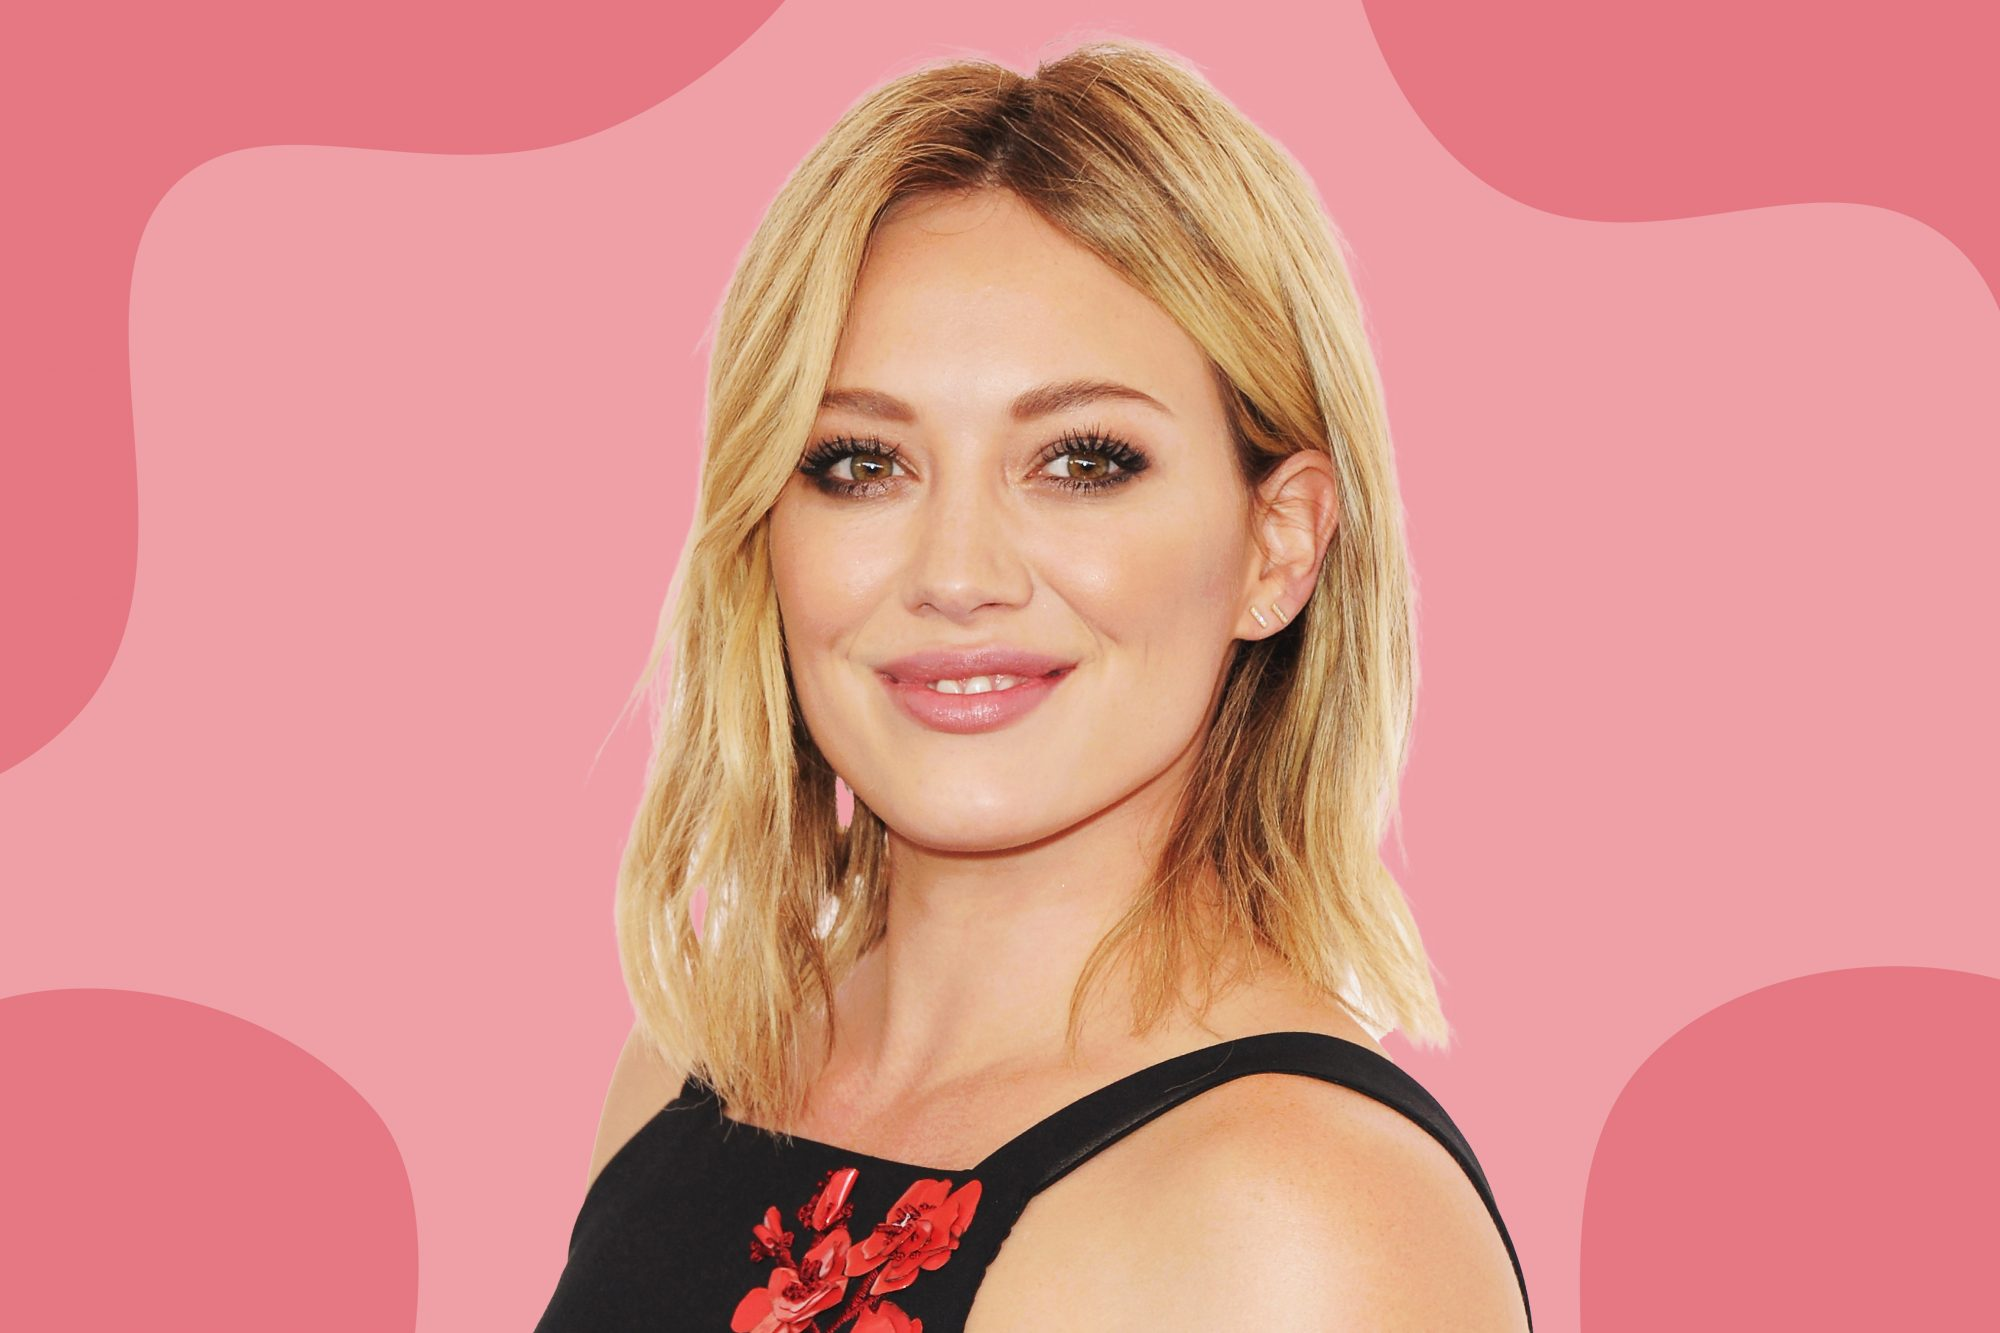 Hilary-Duff-COVID-19-GettyImages-462926692